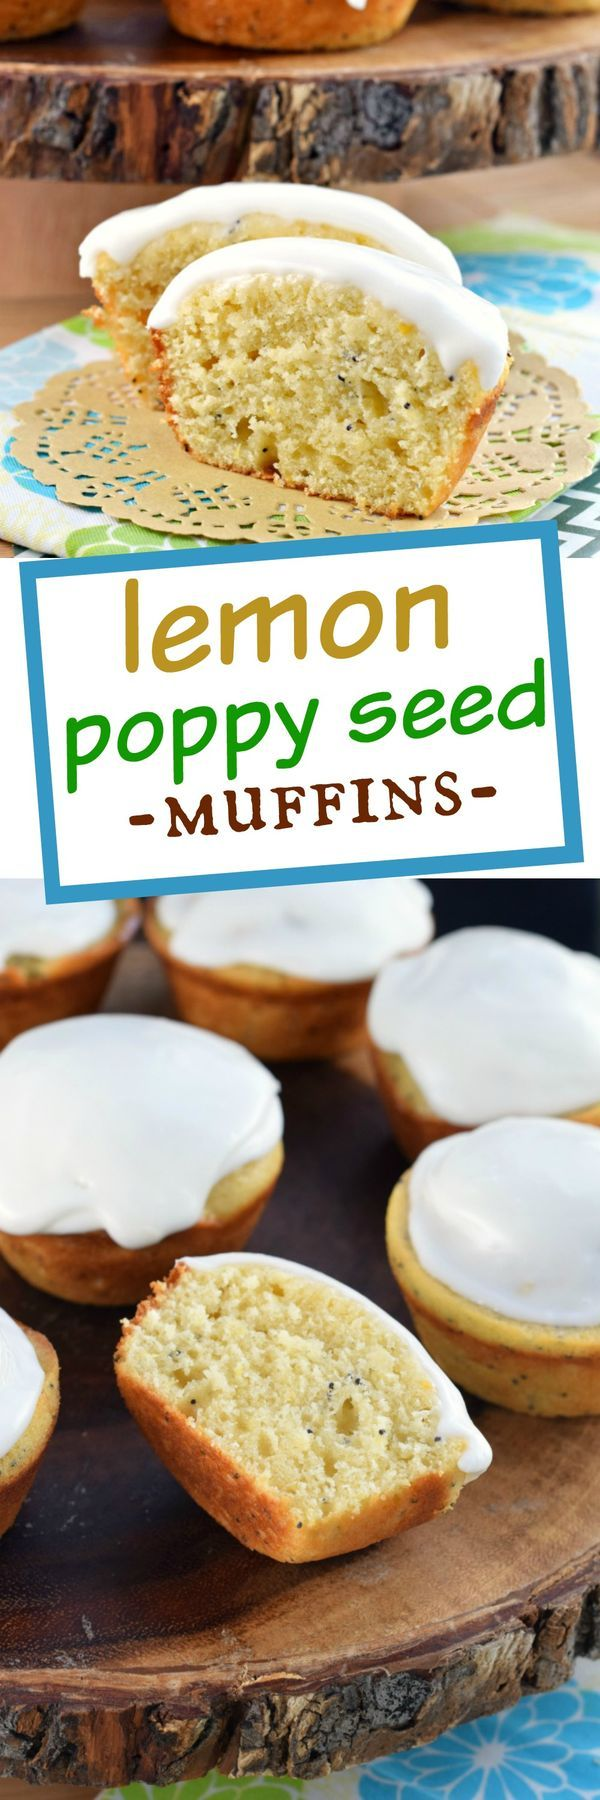 ... | Coffee muffins, Easy blueberry muffins and Blueberries muffins